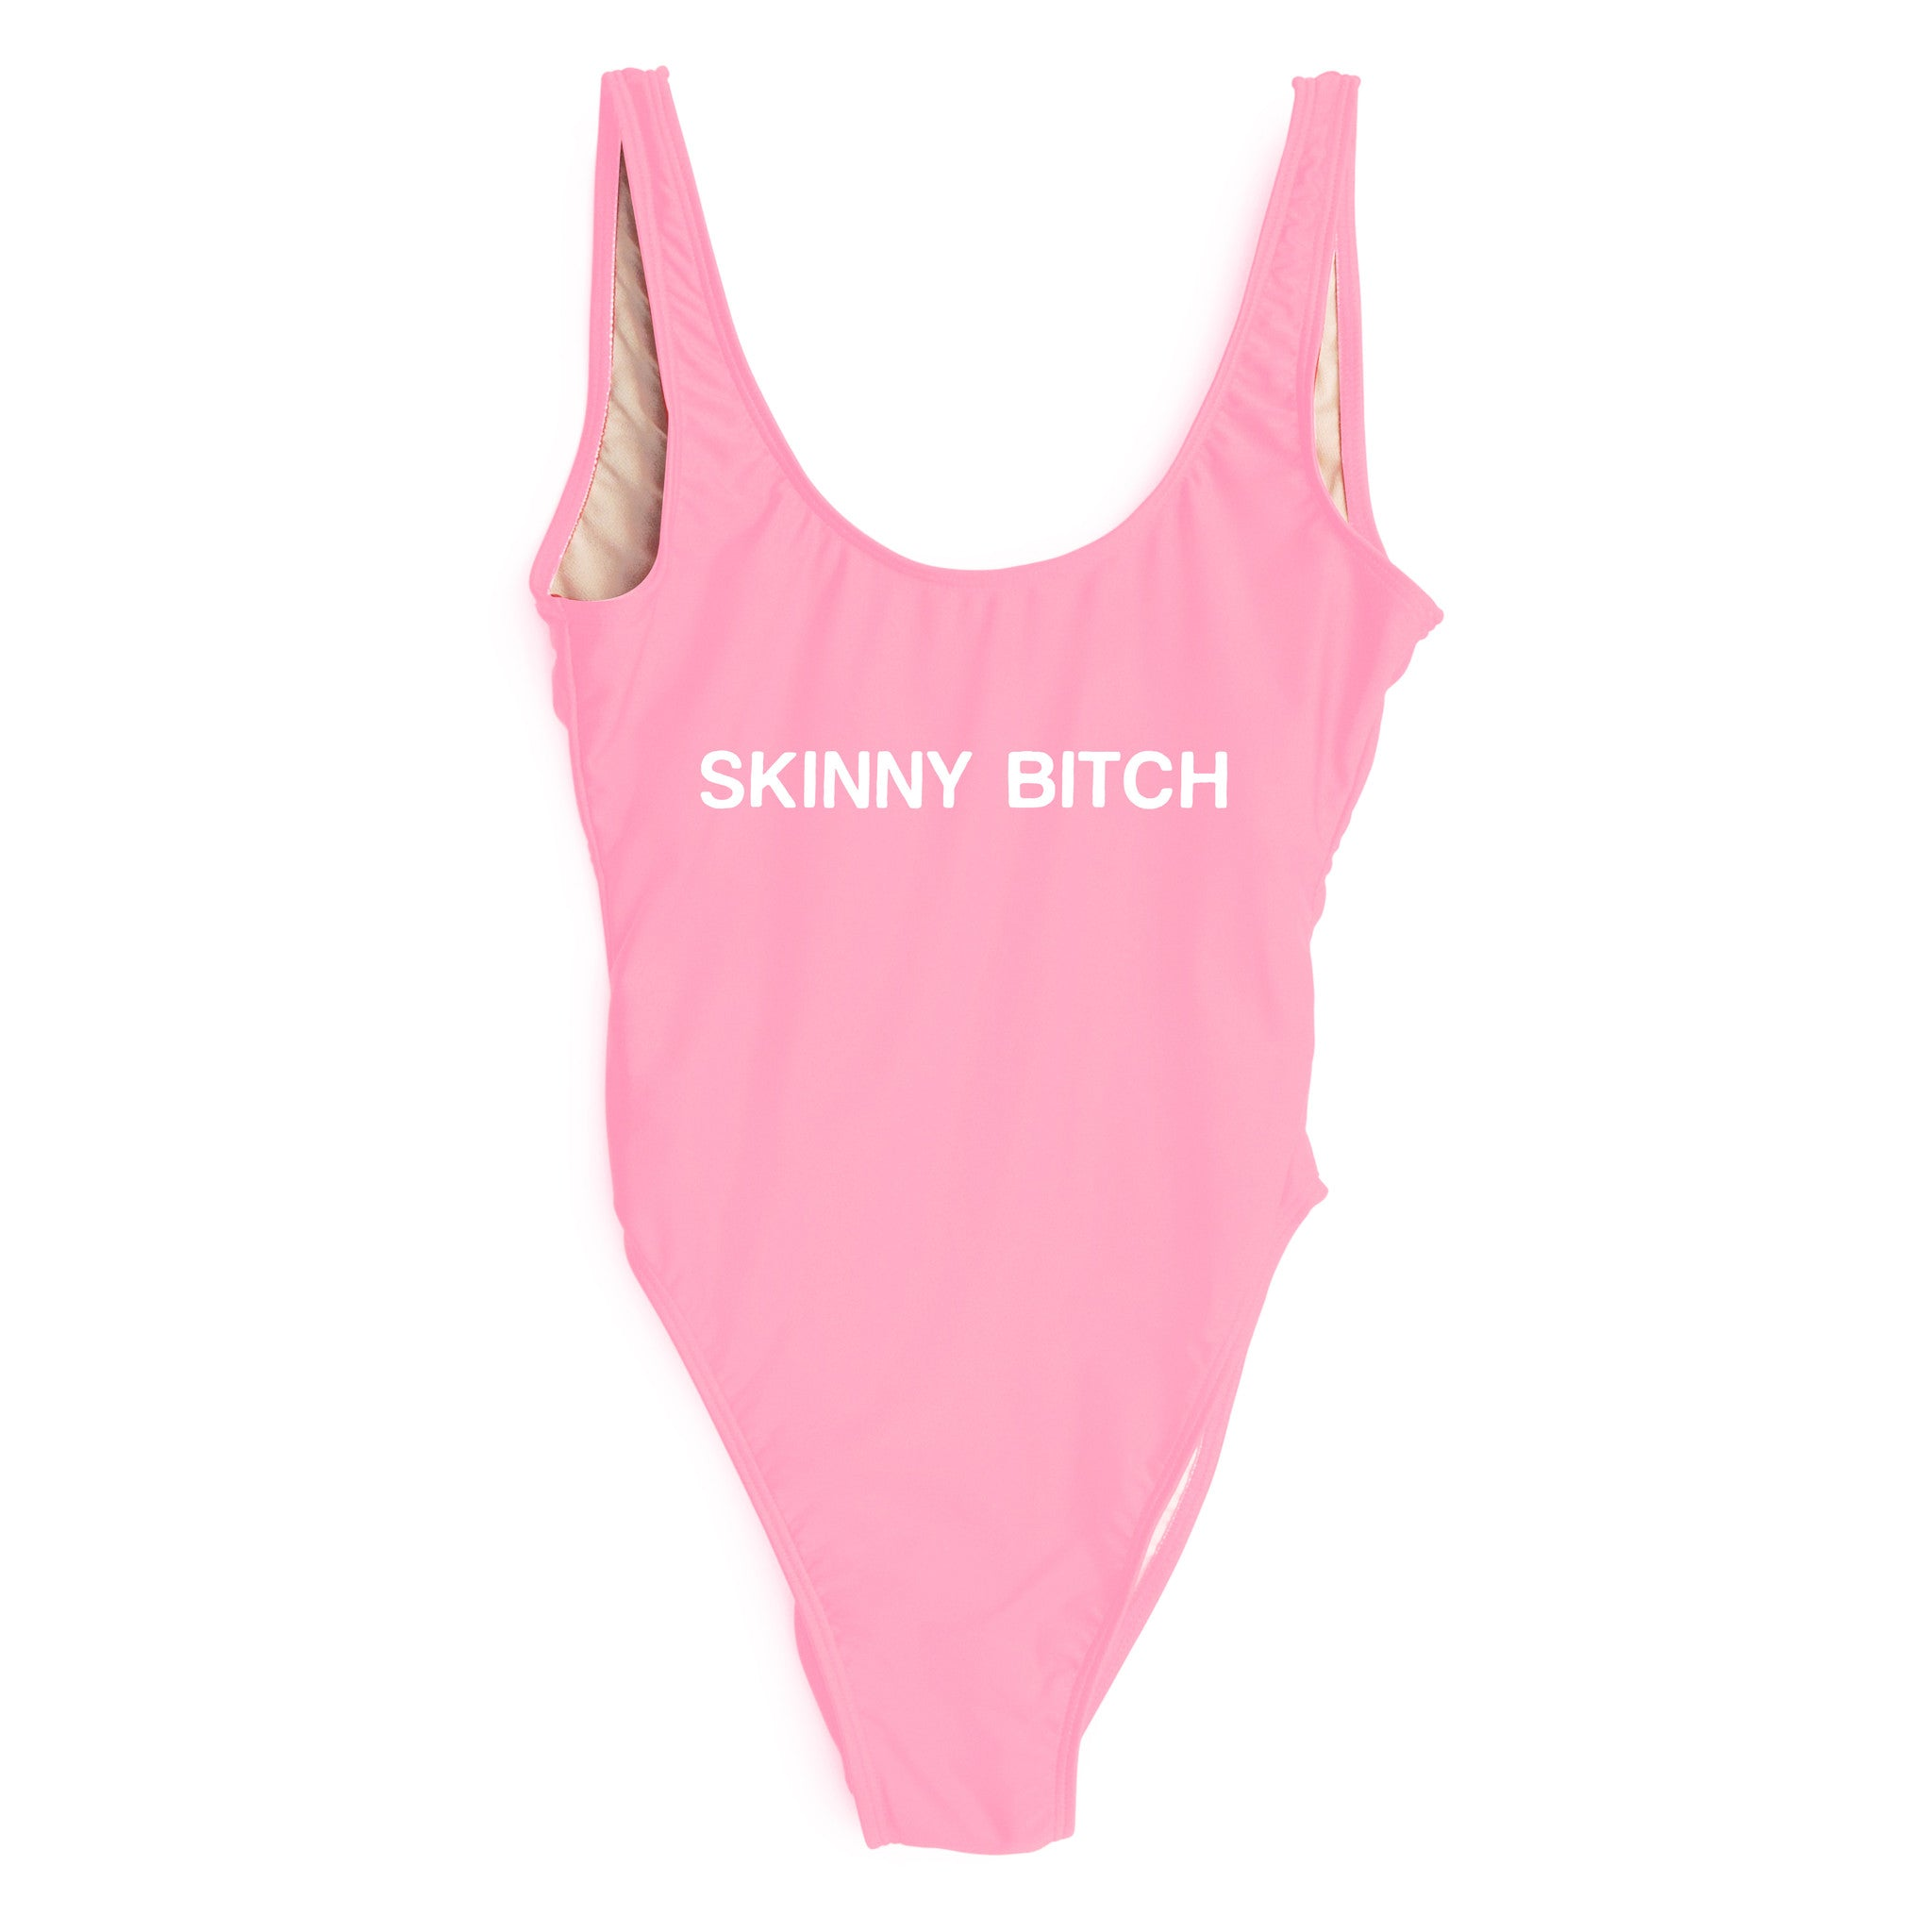 SKINNY BITCH [SWIMSUIT]